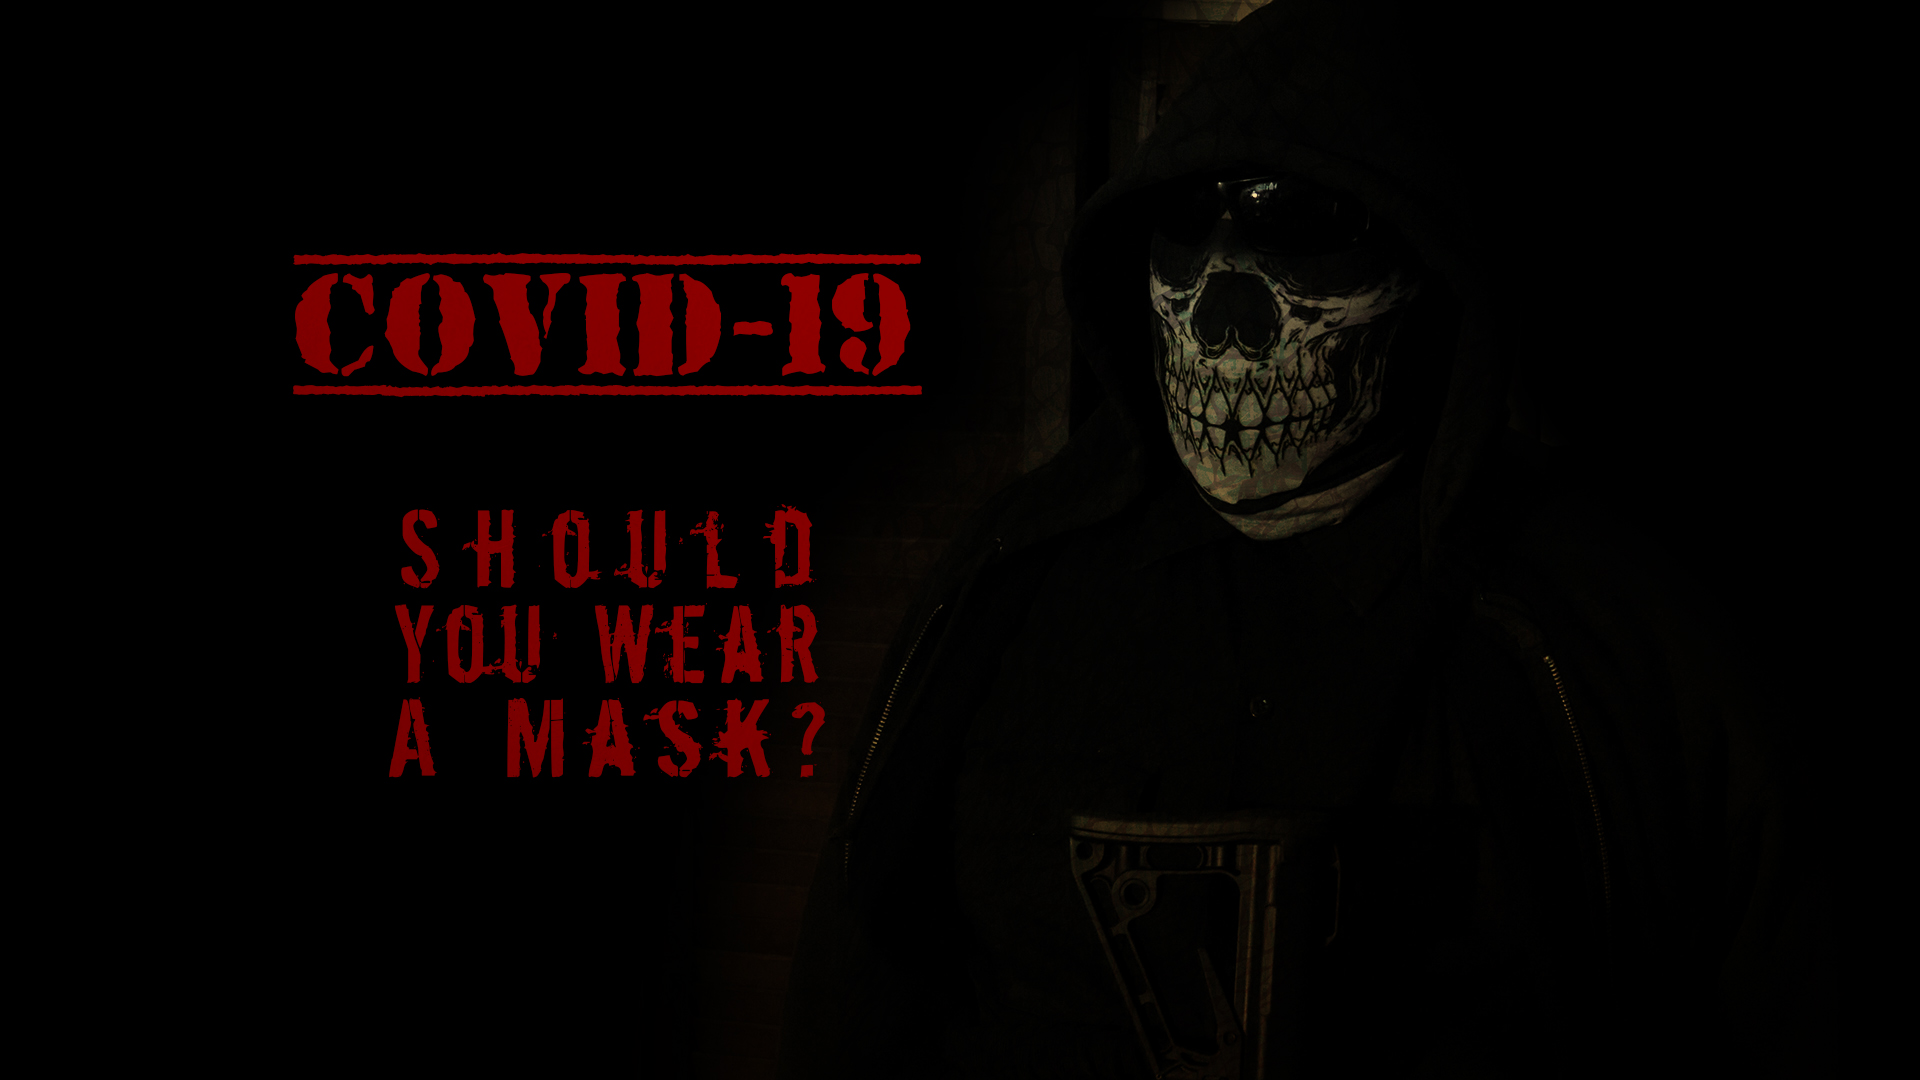 Covid-19: Should You Wear A Mask?